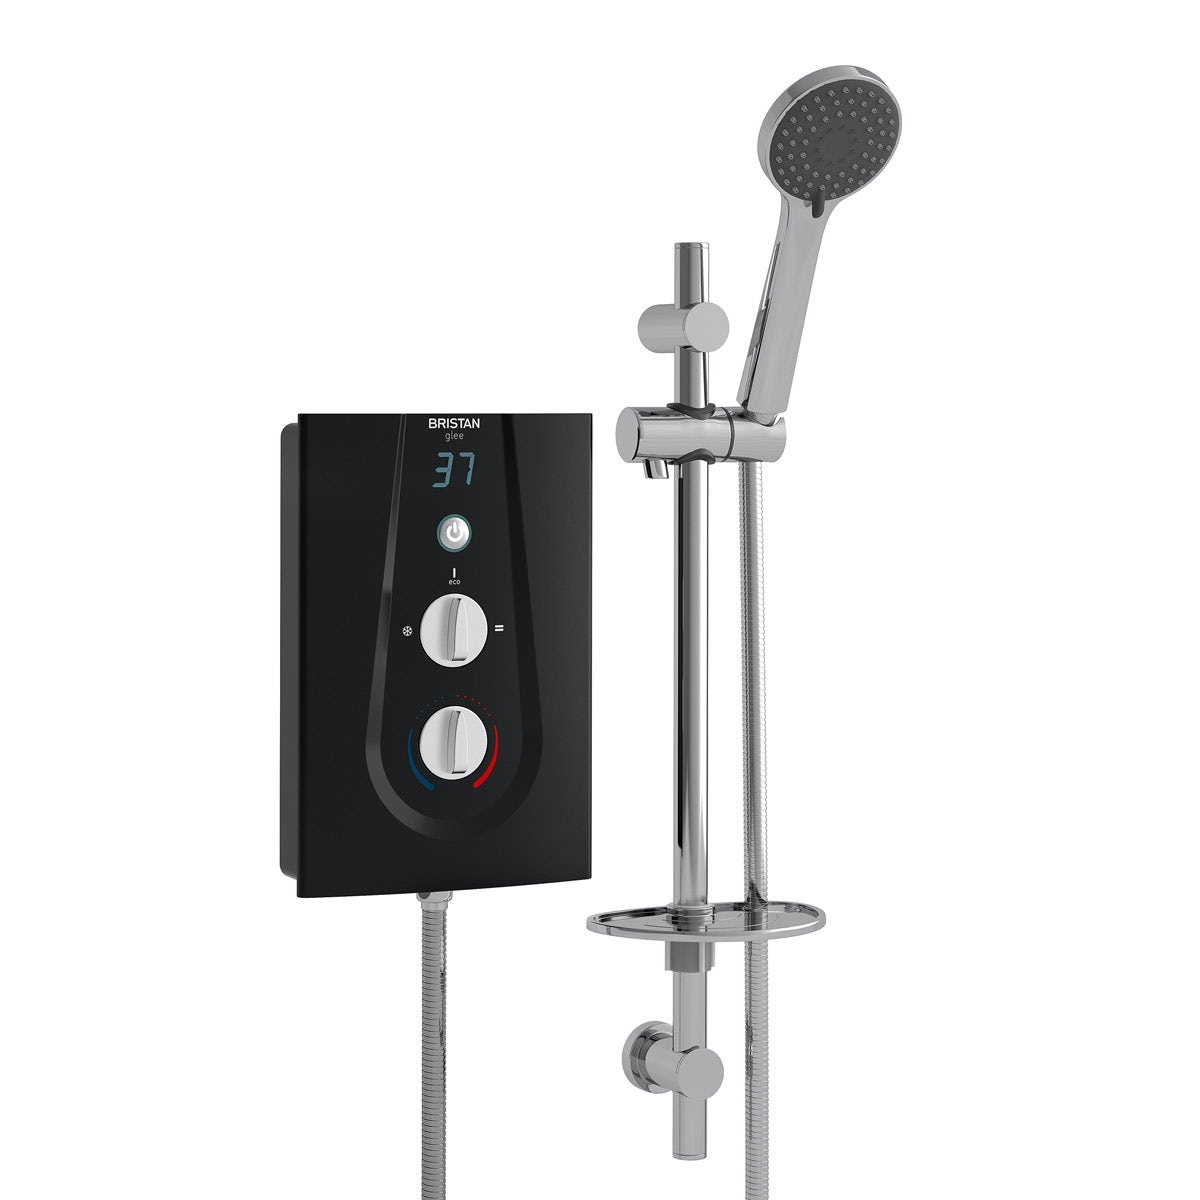 Bristan Glee 9.5kw electric shower black